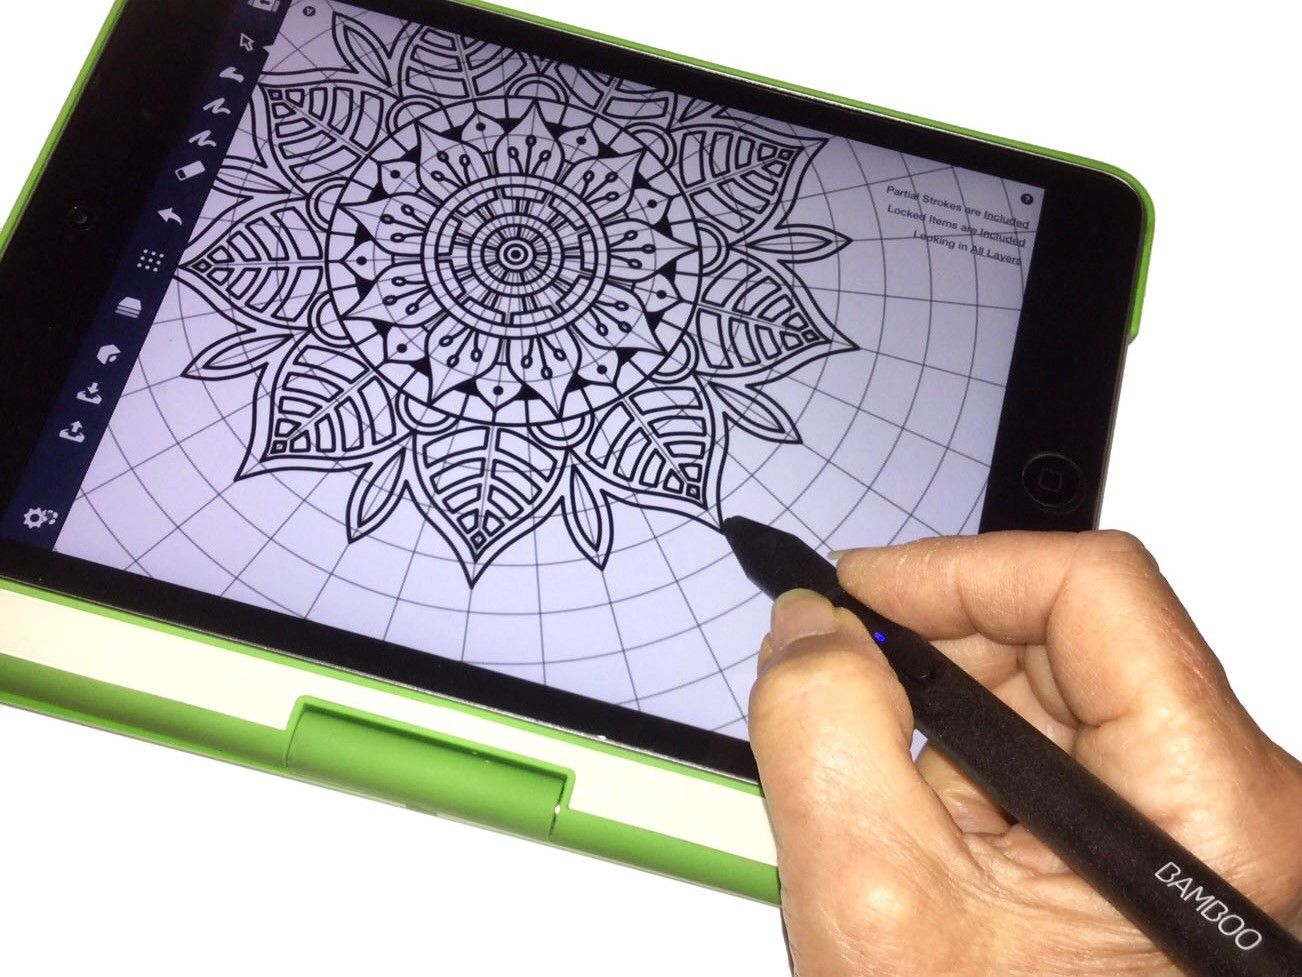 How to Draw a Mandala in Concepts Concepts App